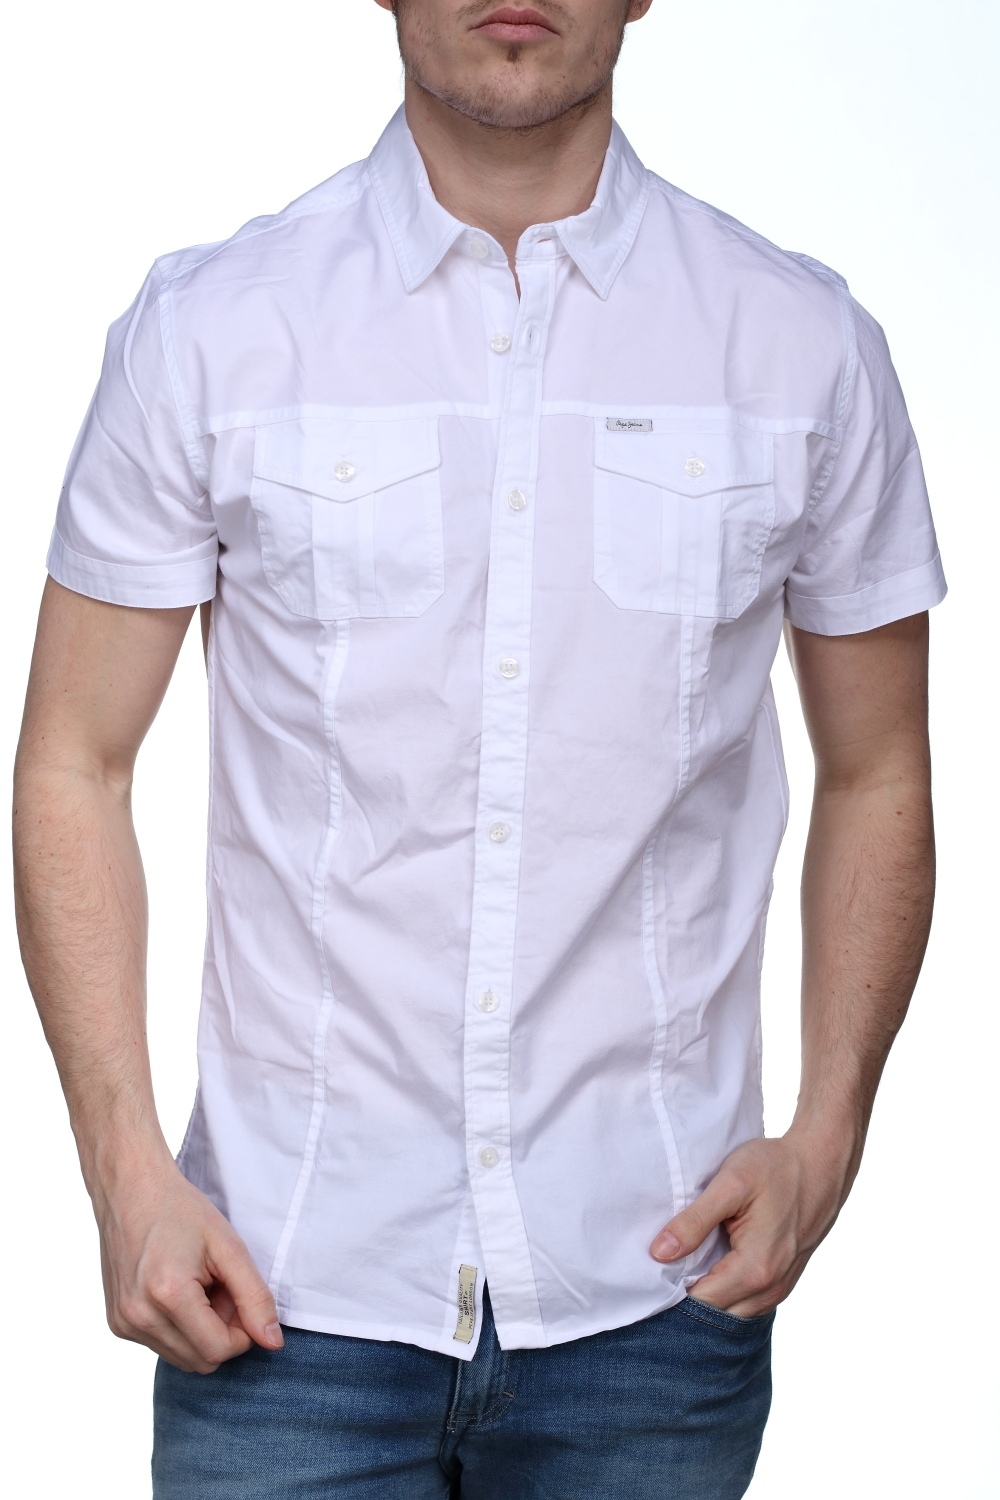 http://www.leadermode.com/121139/pepe-jeans-chad-new-pm302896-800-white.jpg